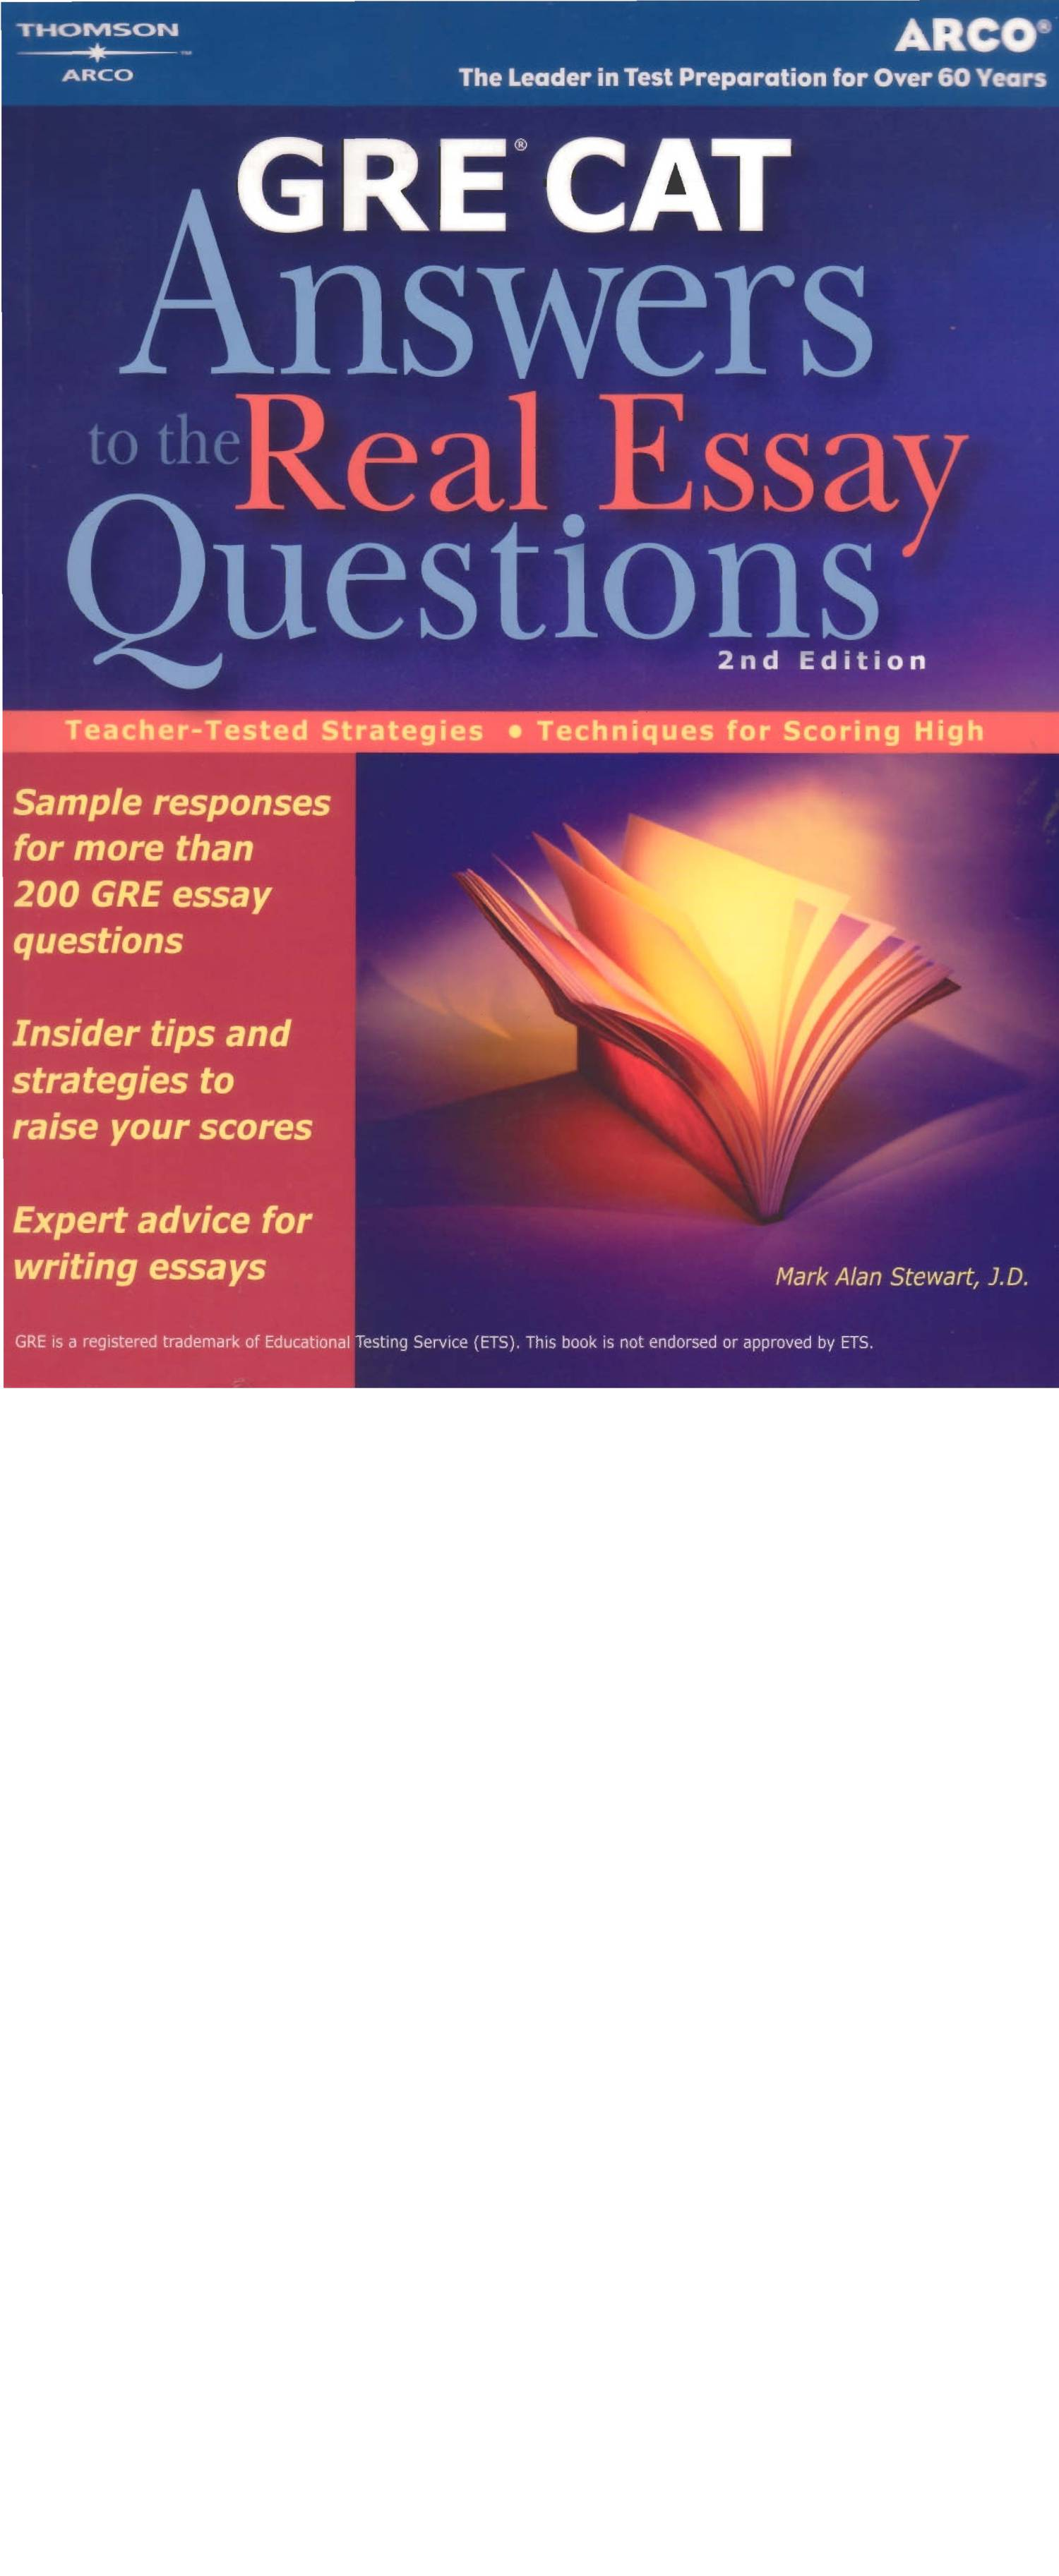 answers to the real essay questions gre cat nd edition pdf answers to the real essay questions gre cat 2nd edition pdf docdroid